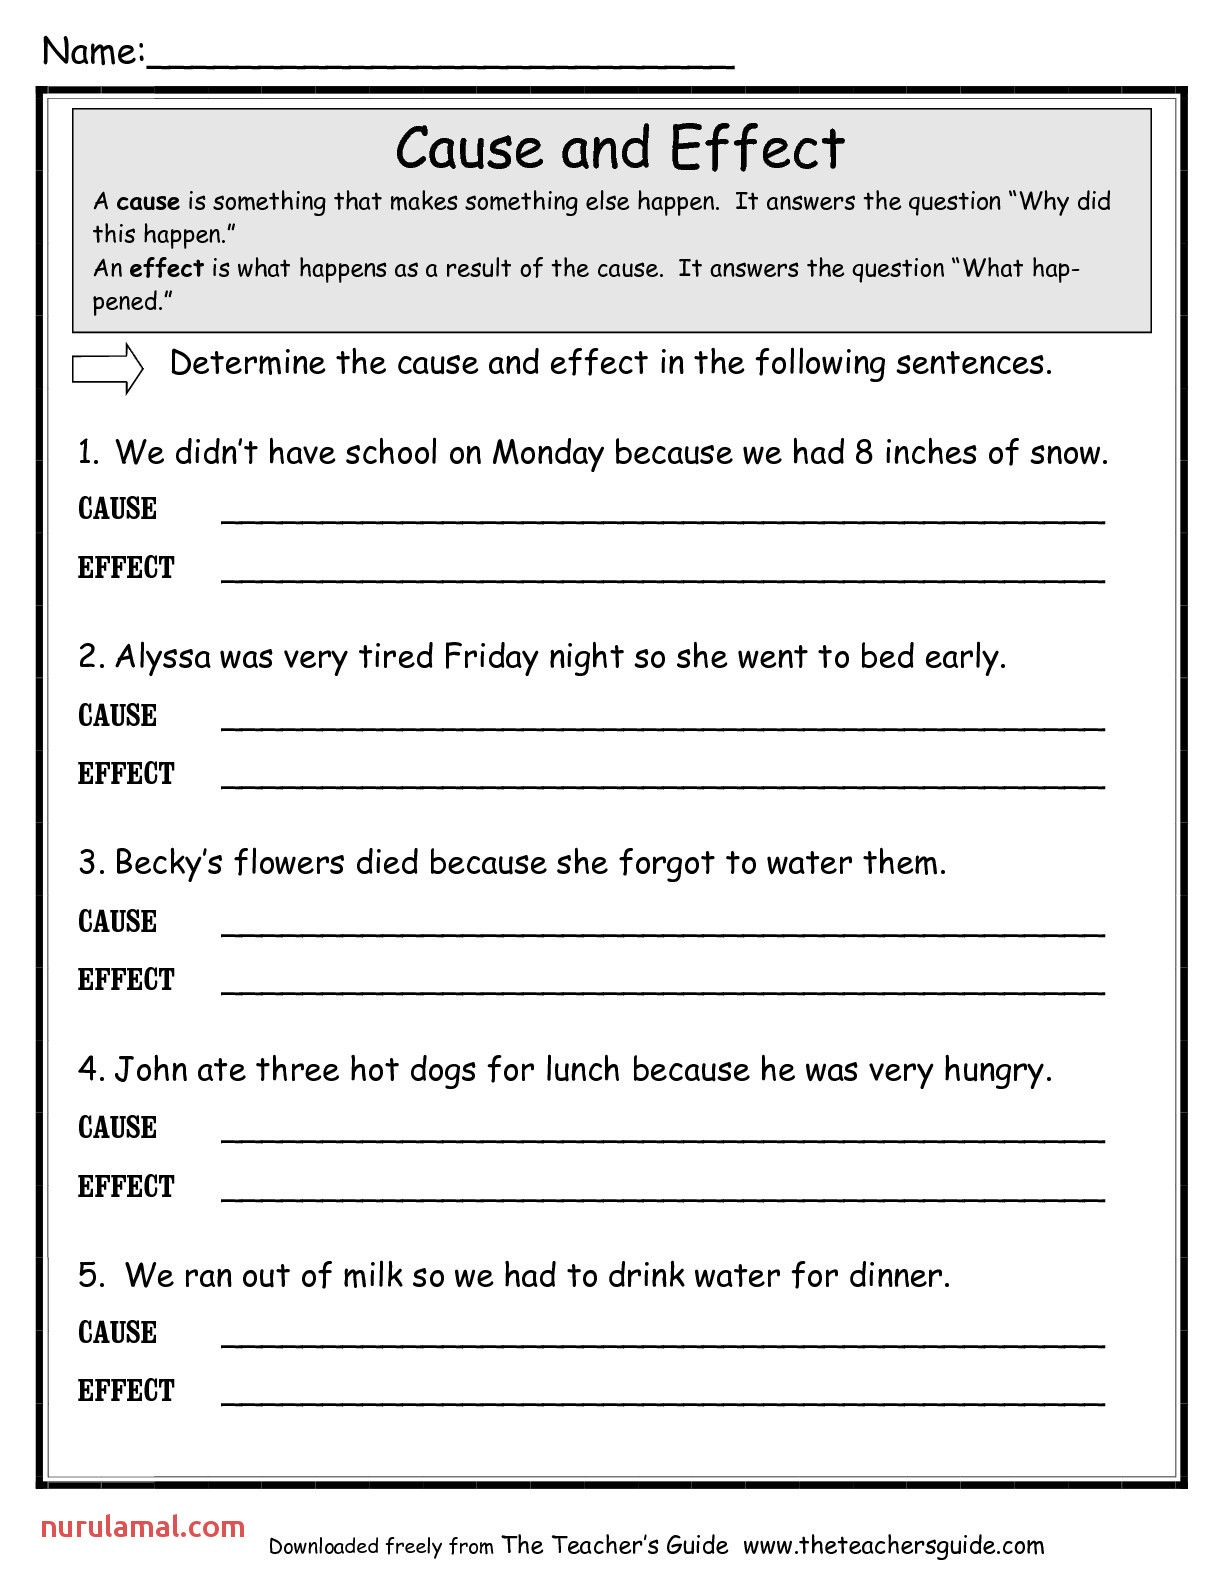 The Letter A Worksheets Printable 001 in 2020 Cause and